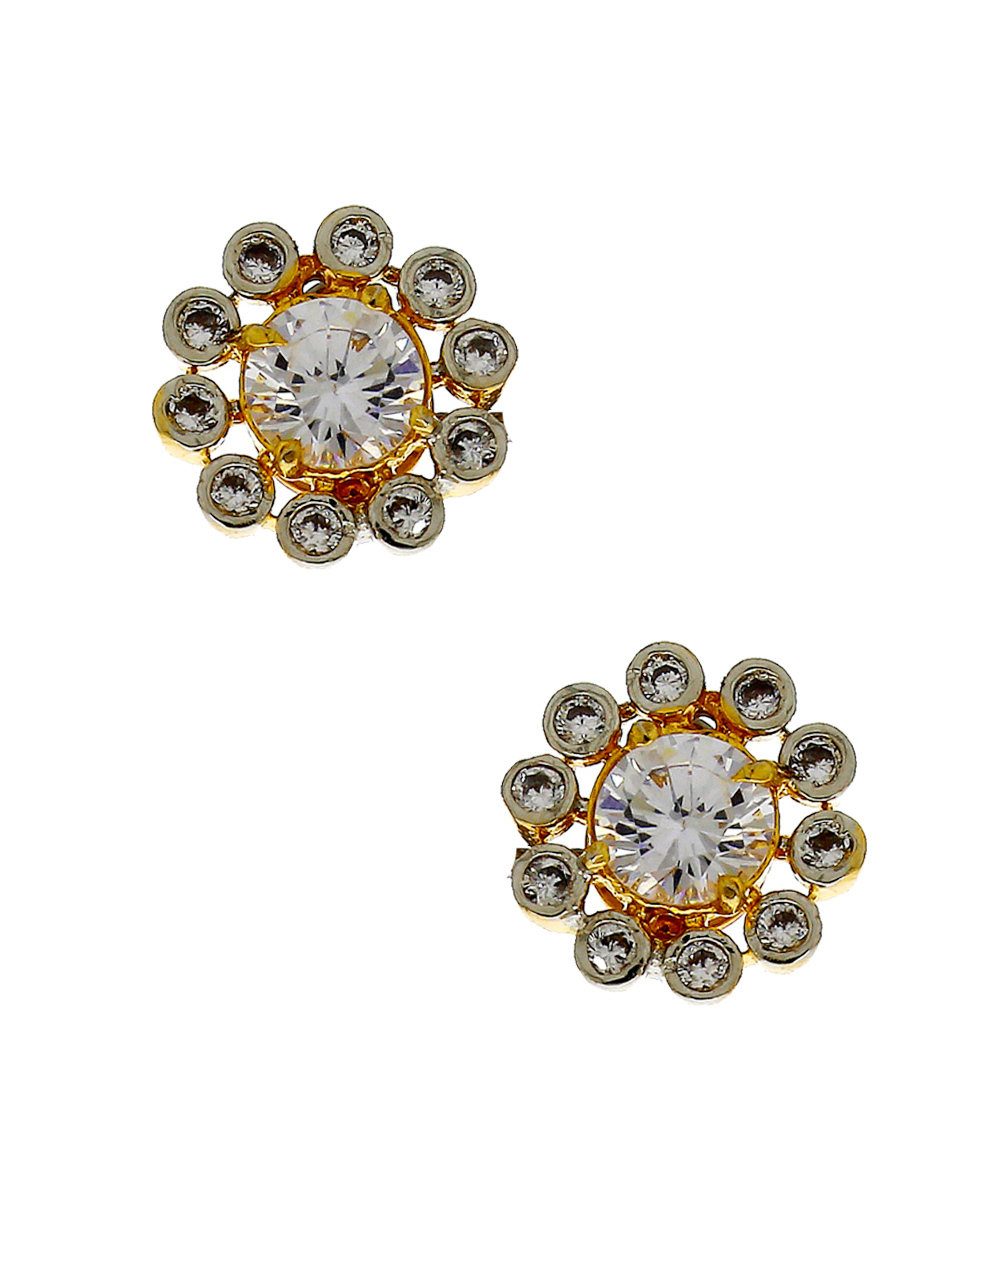 ba7f4a45c Designer Gold Finish American Diamond Stud Earring. Loading zoom. image